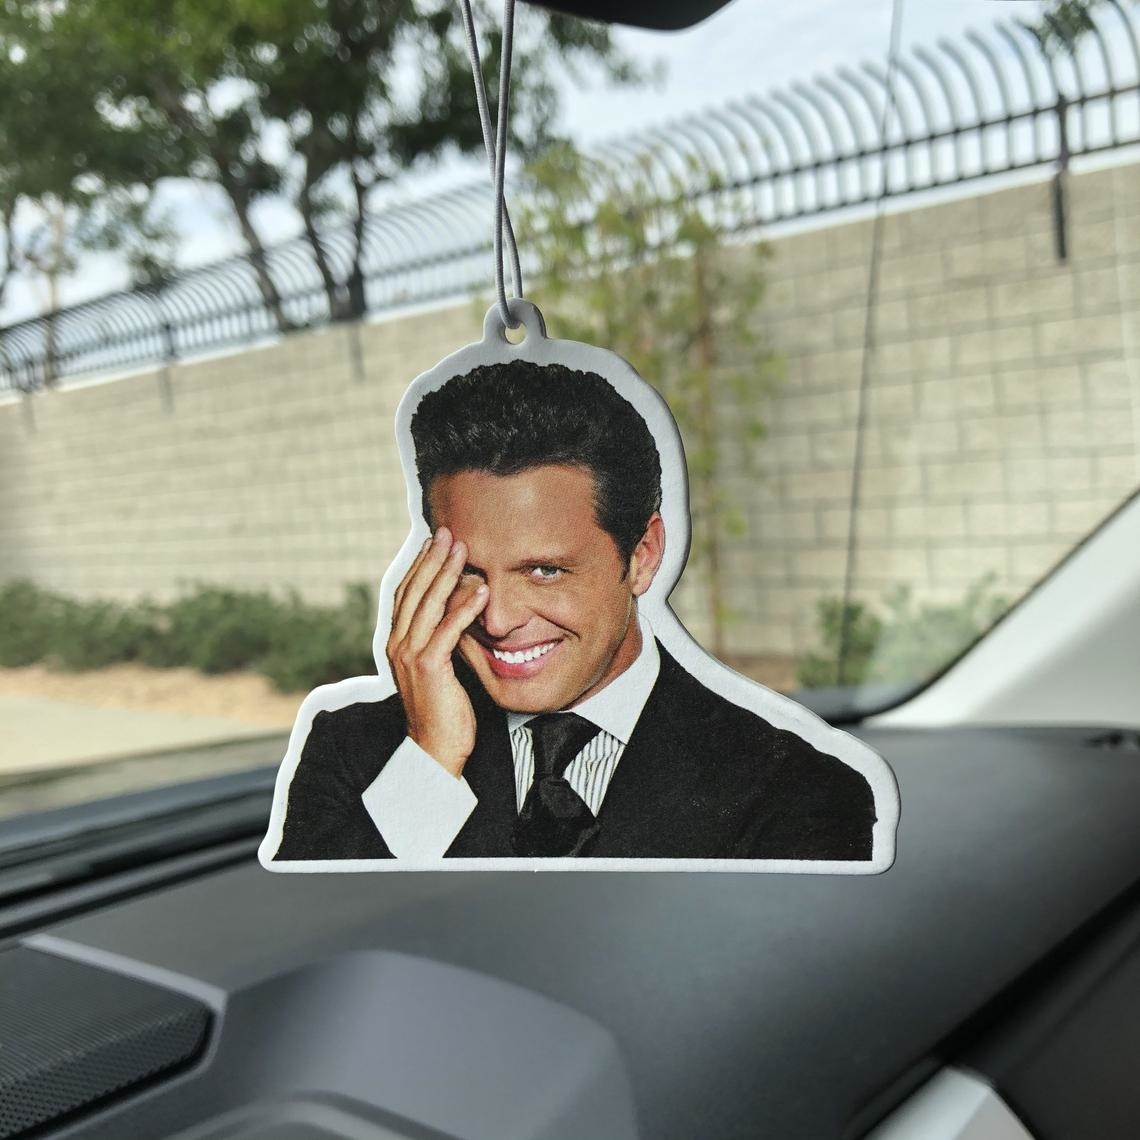 The air freshener hanging in a car's rear view mirror